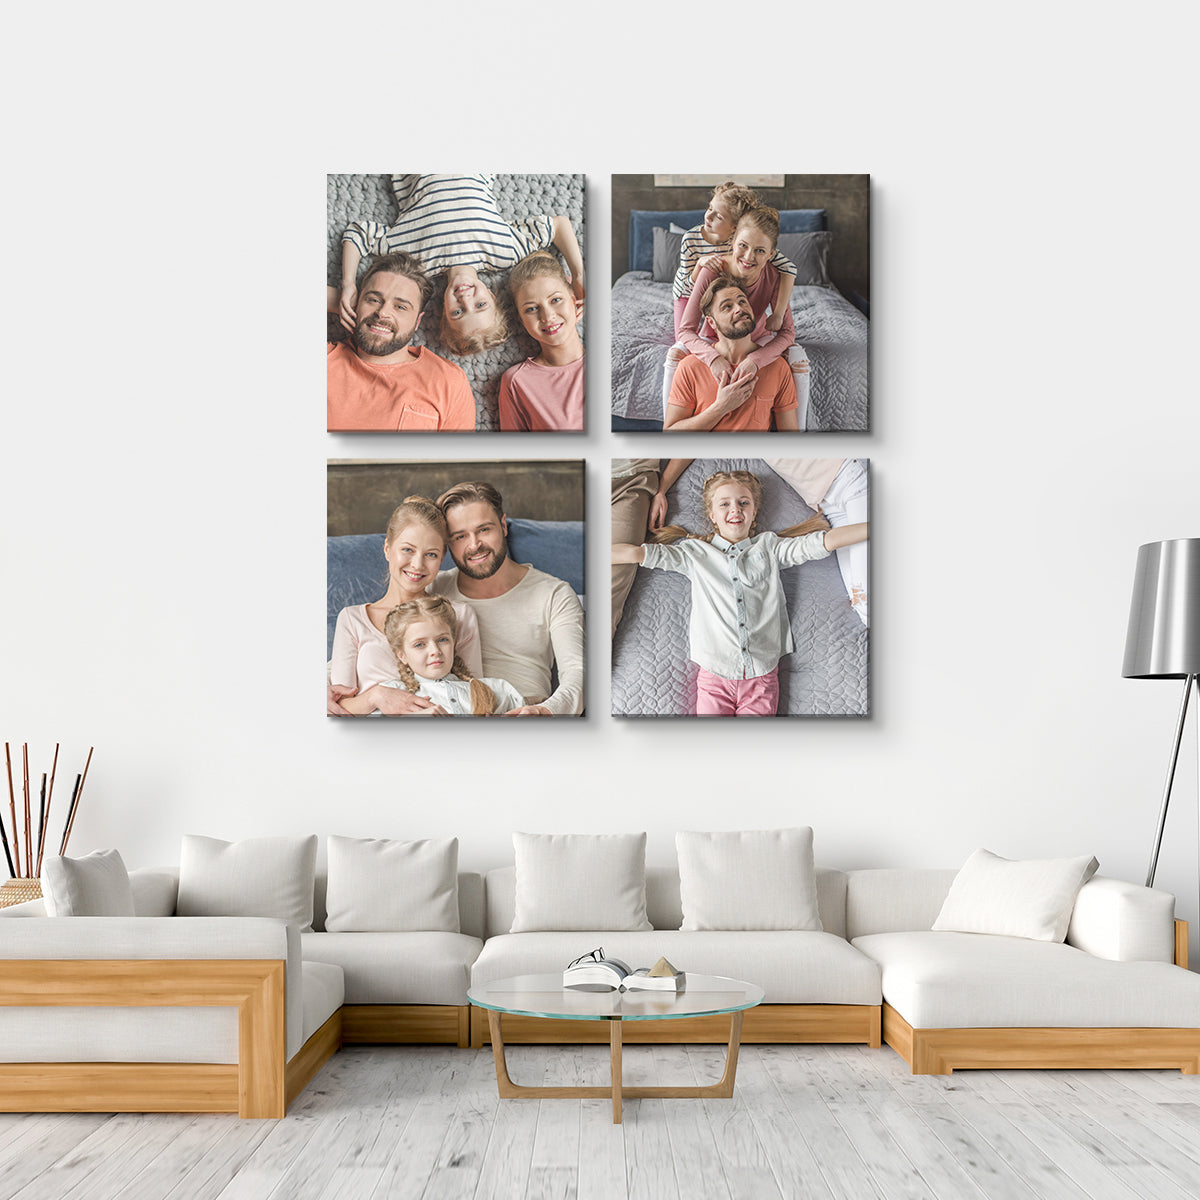 Wall Display Canvas Photo Prints - 4 Square